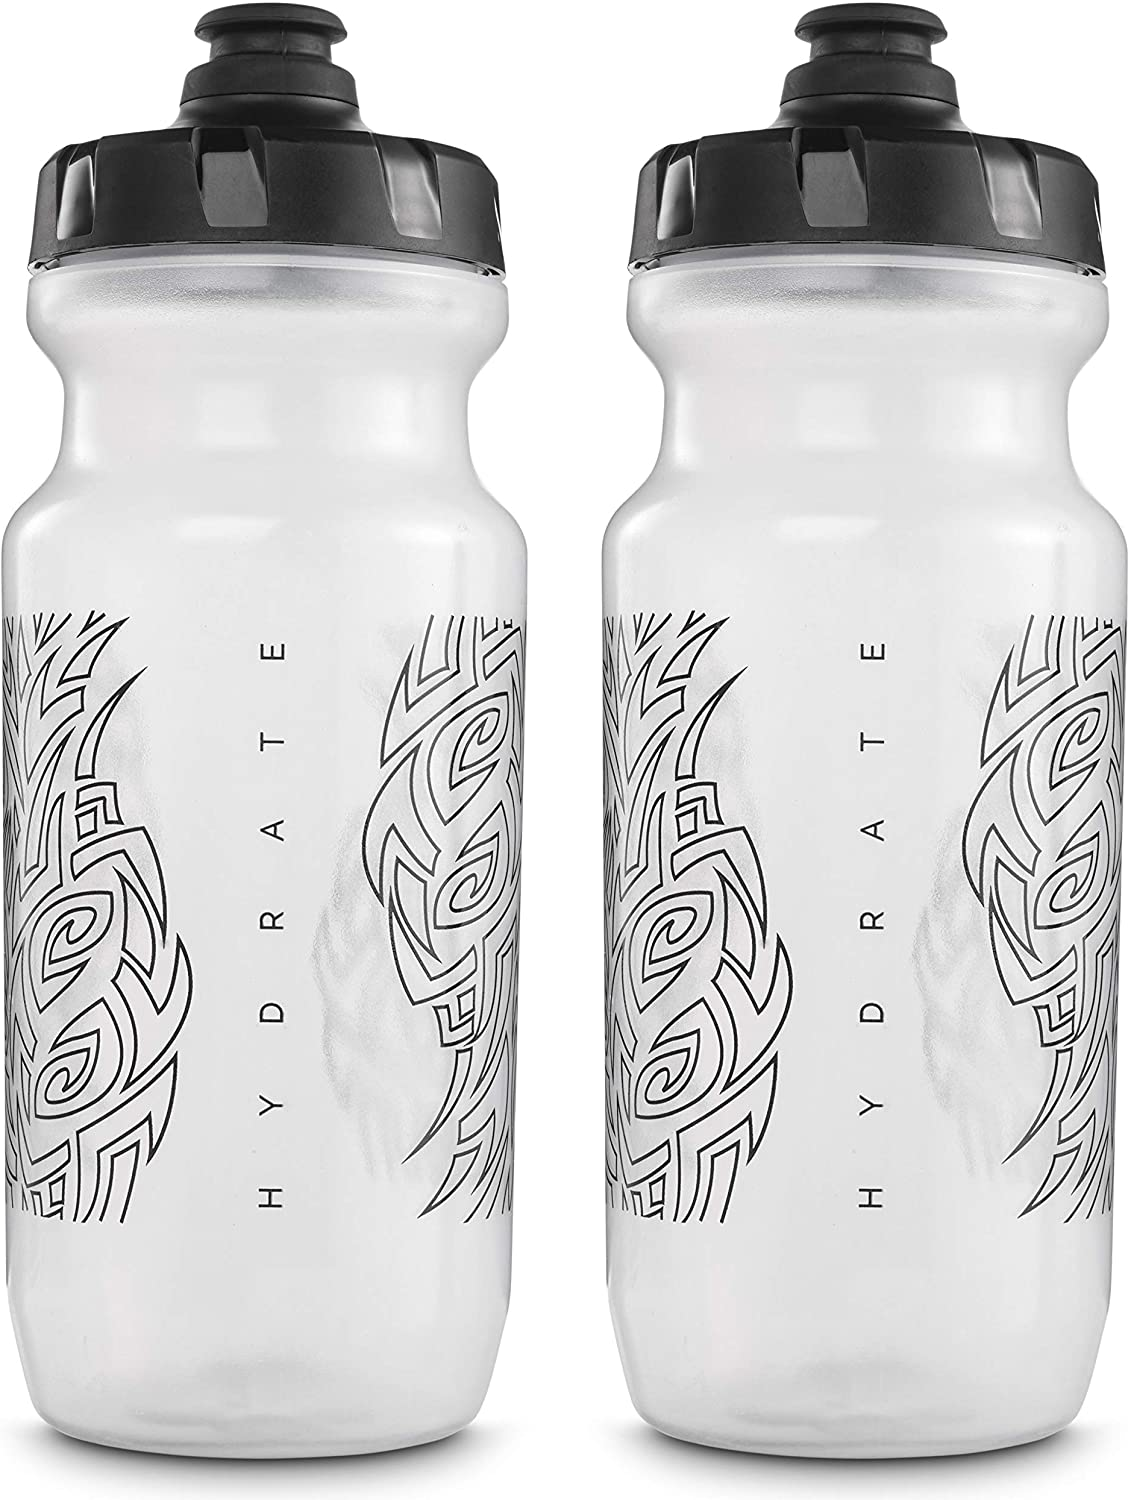 Peakline Sports - 2nd Gen Big Mouth Water Bottle (21 oz) by Specialized Bikes (2-Pack) (Clear/Black)